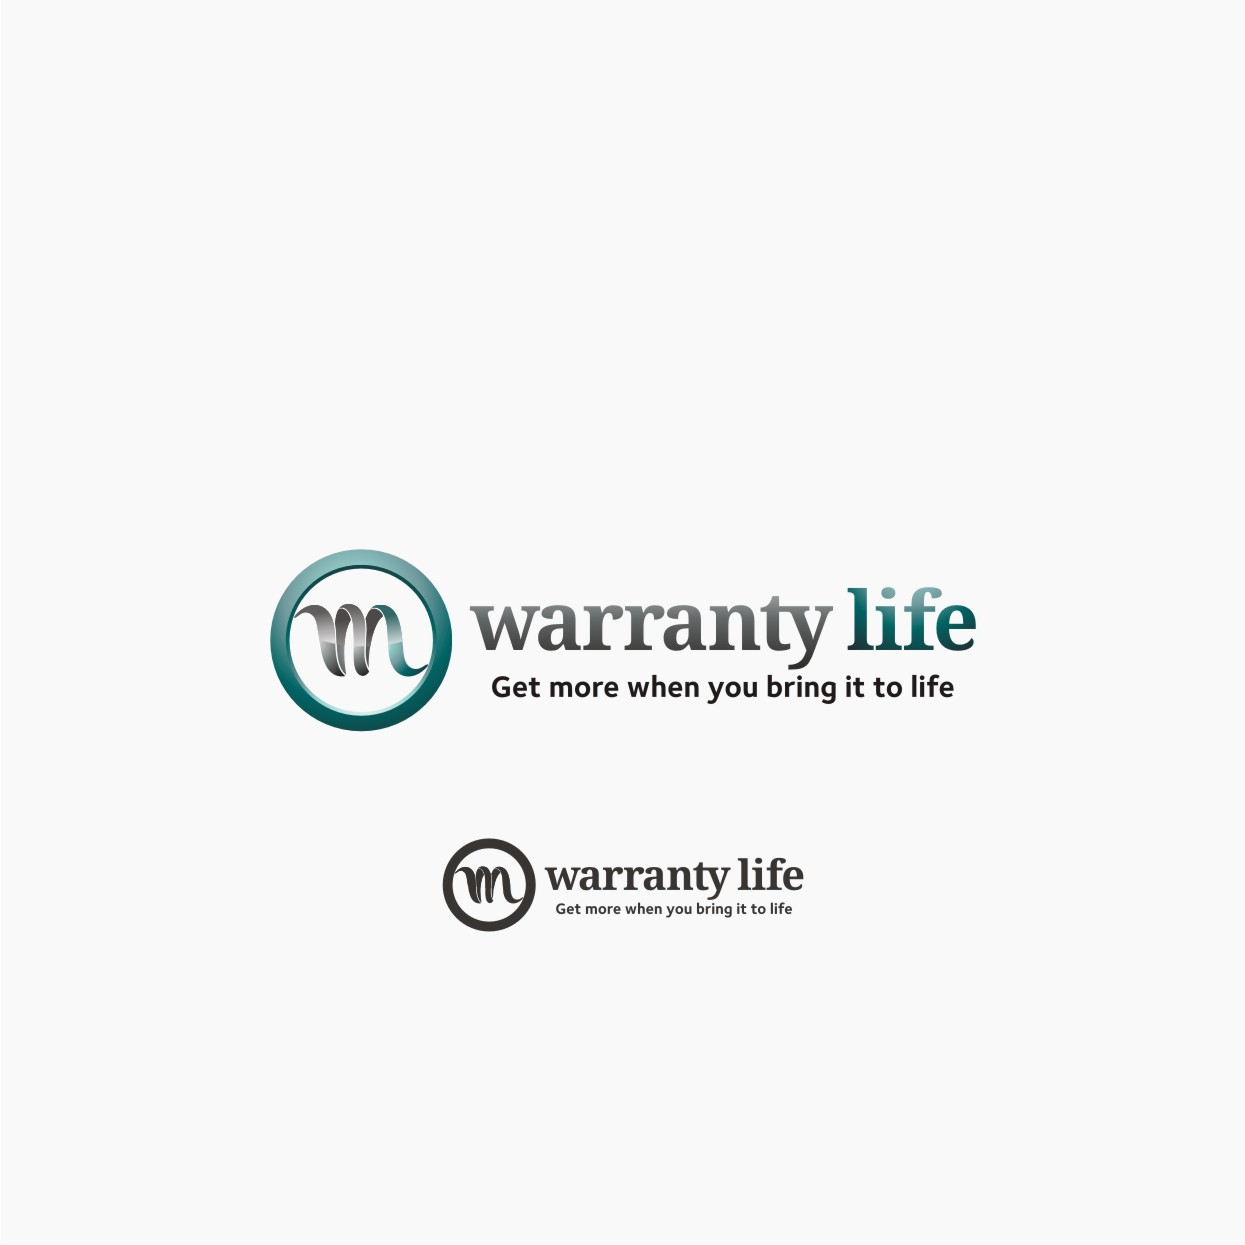 Logo Design by graphicleaf - Entry No. 70 in the Logo Design Contest WarrantyLife Logo Design.